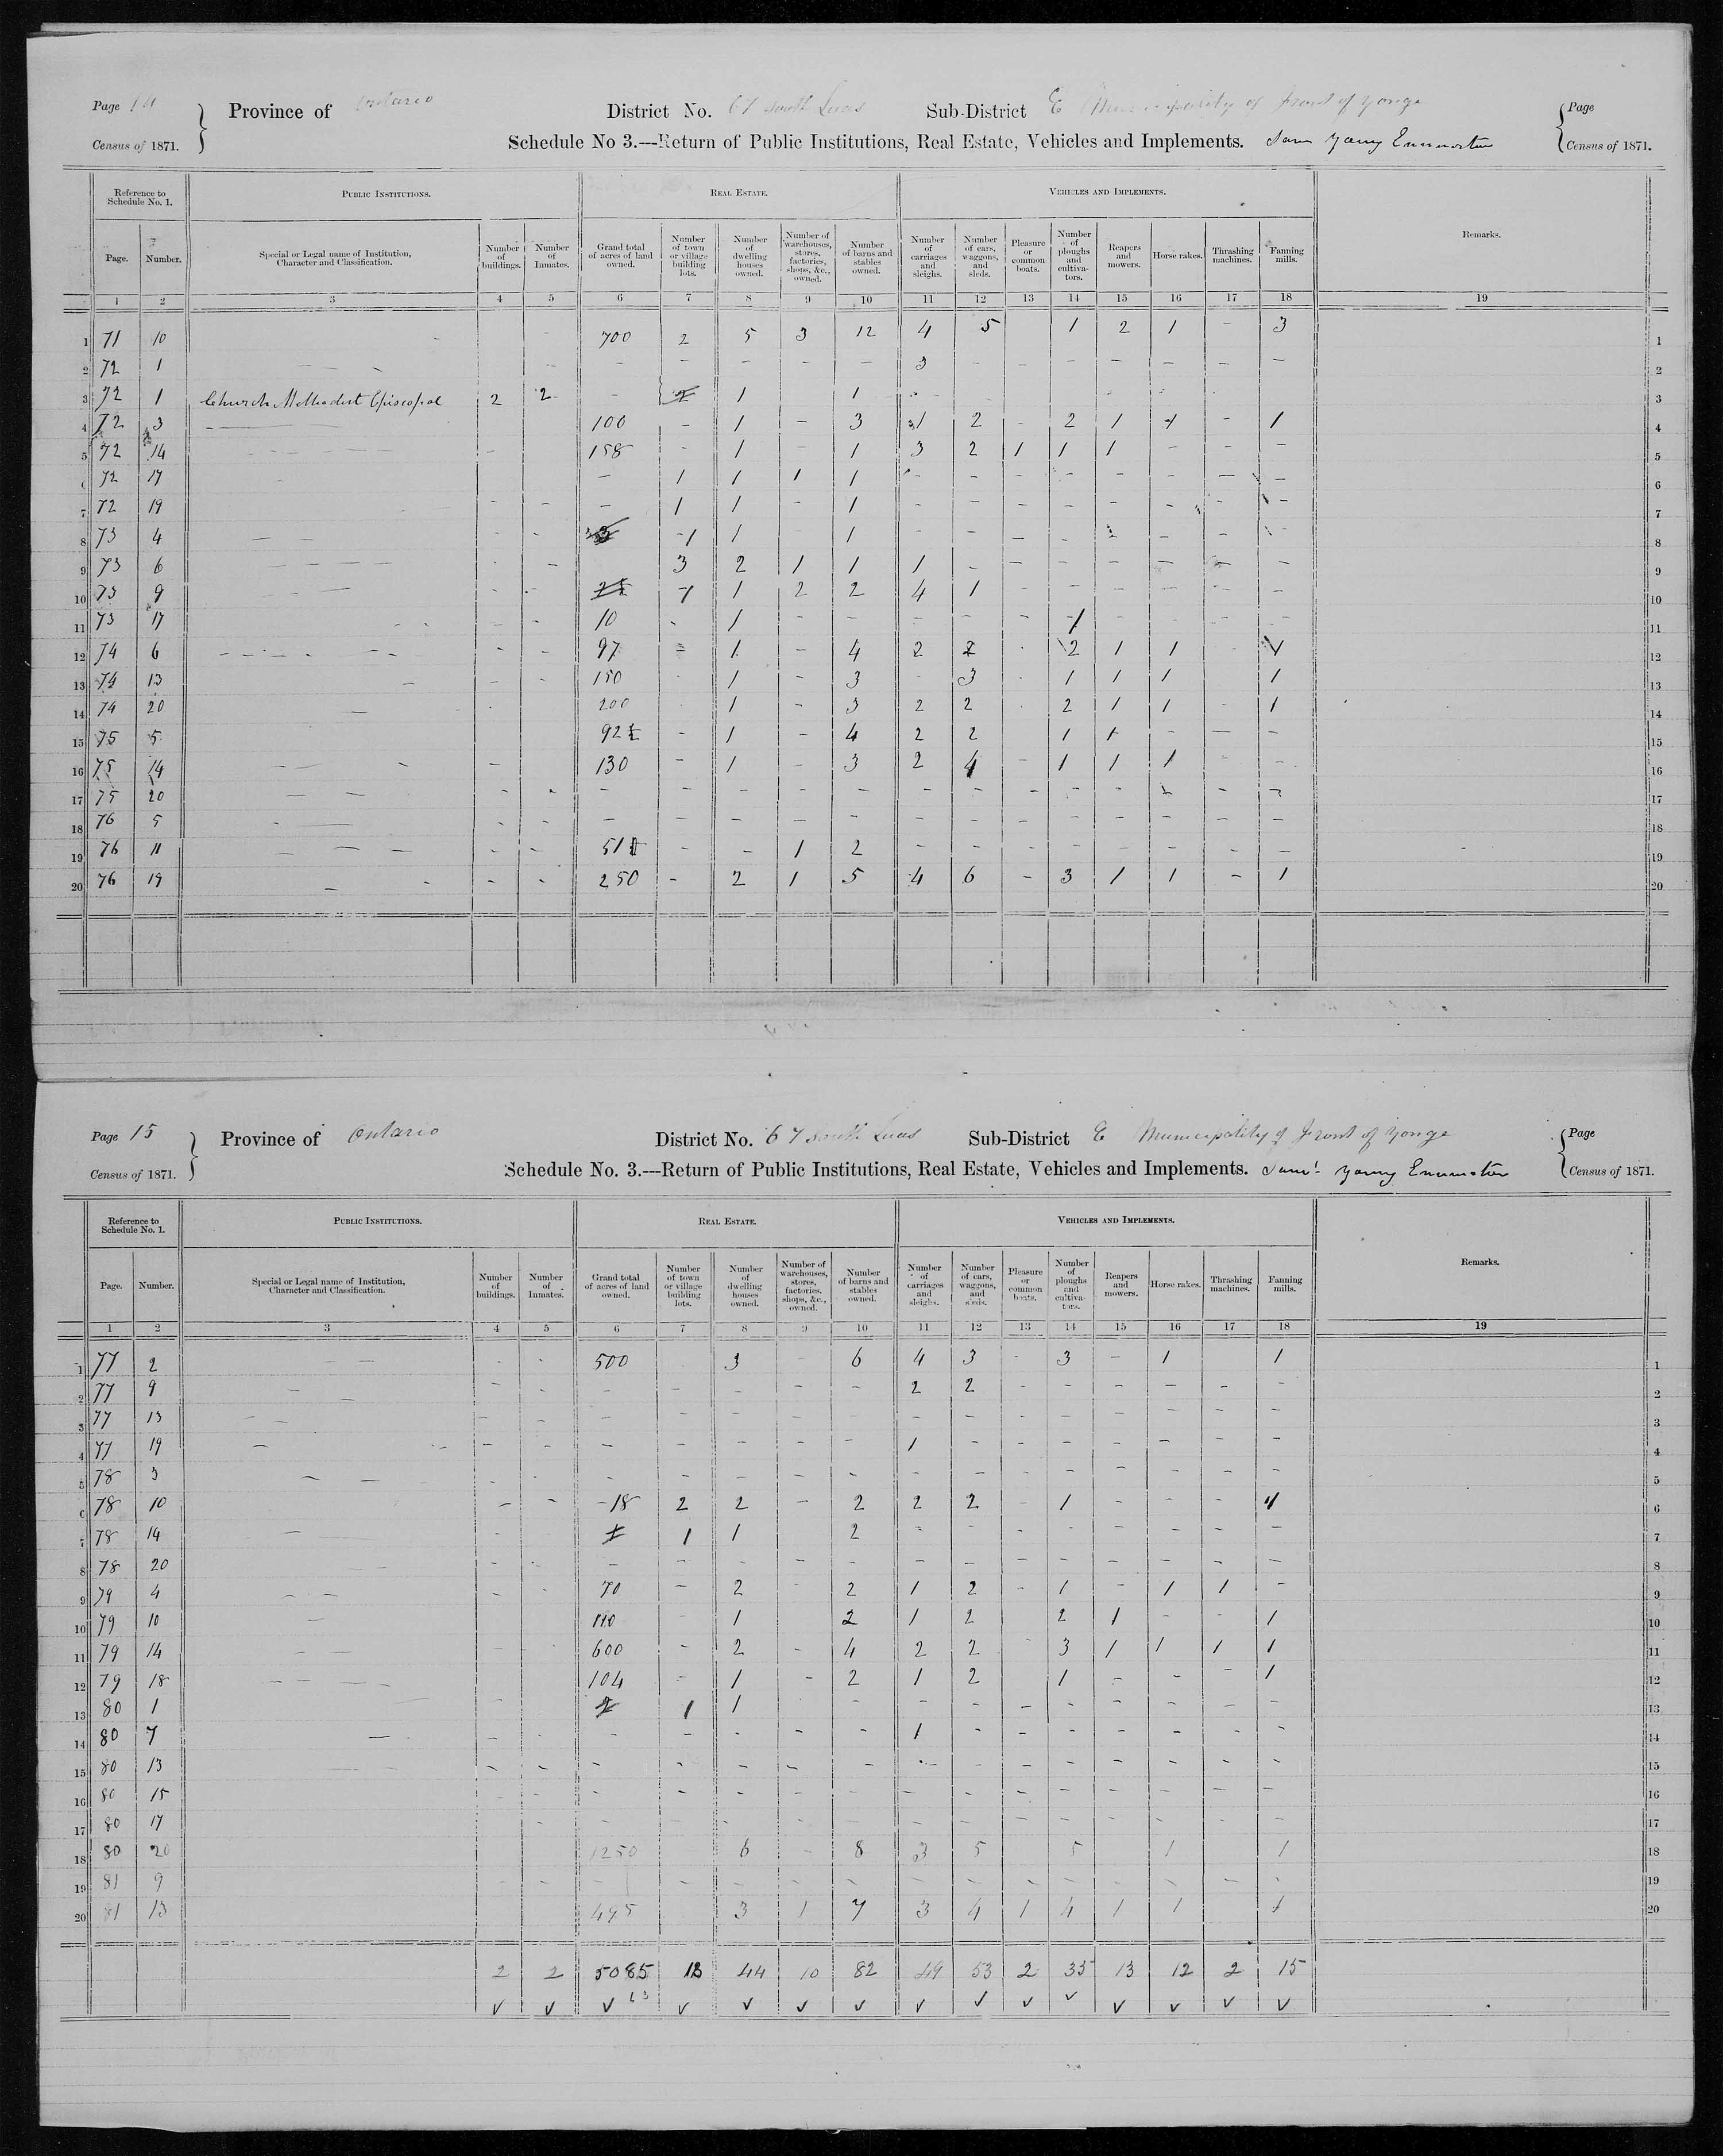 Title: Census of Canada, 1871 - Mikan Number: 142105 - Microform: c-10001